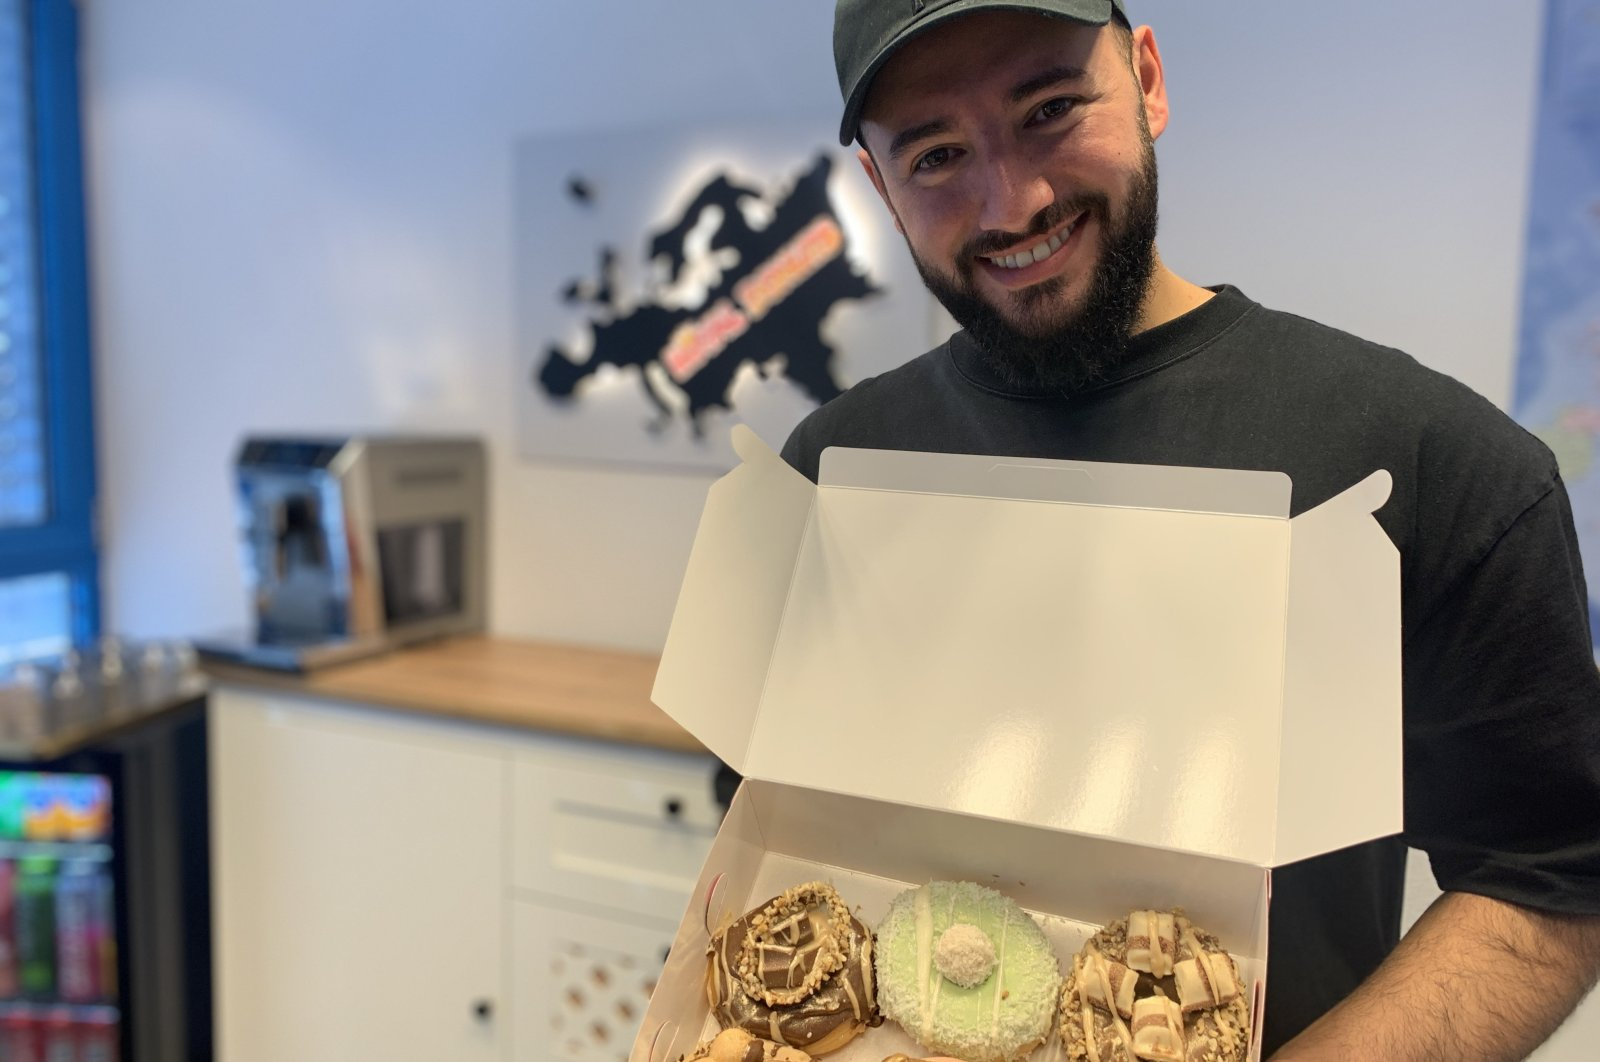 Enes Şeker shows a box of Royal Donuts in one of his stores in this photo provided on Feb. 19, 2021. (DHA Photo)